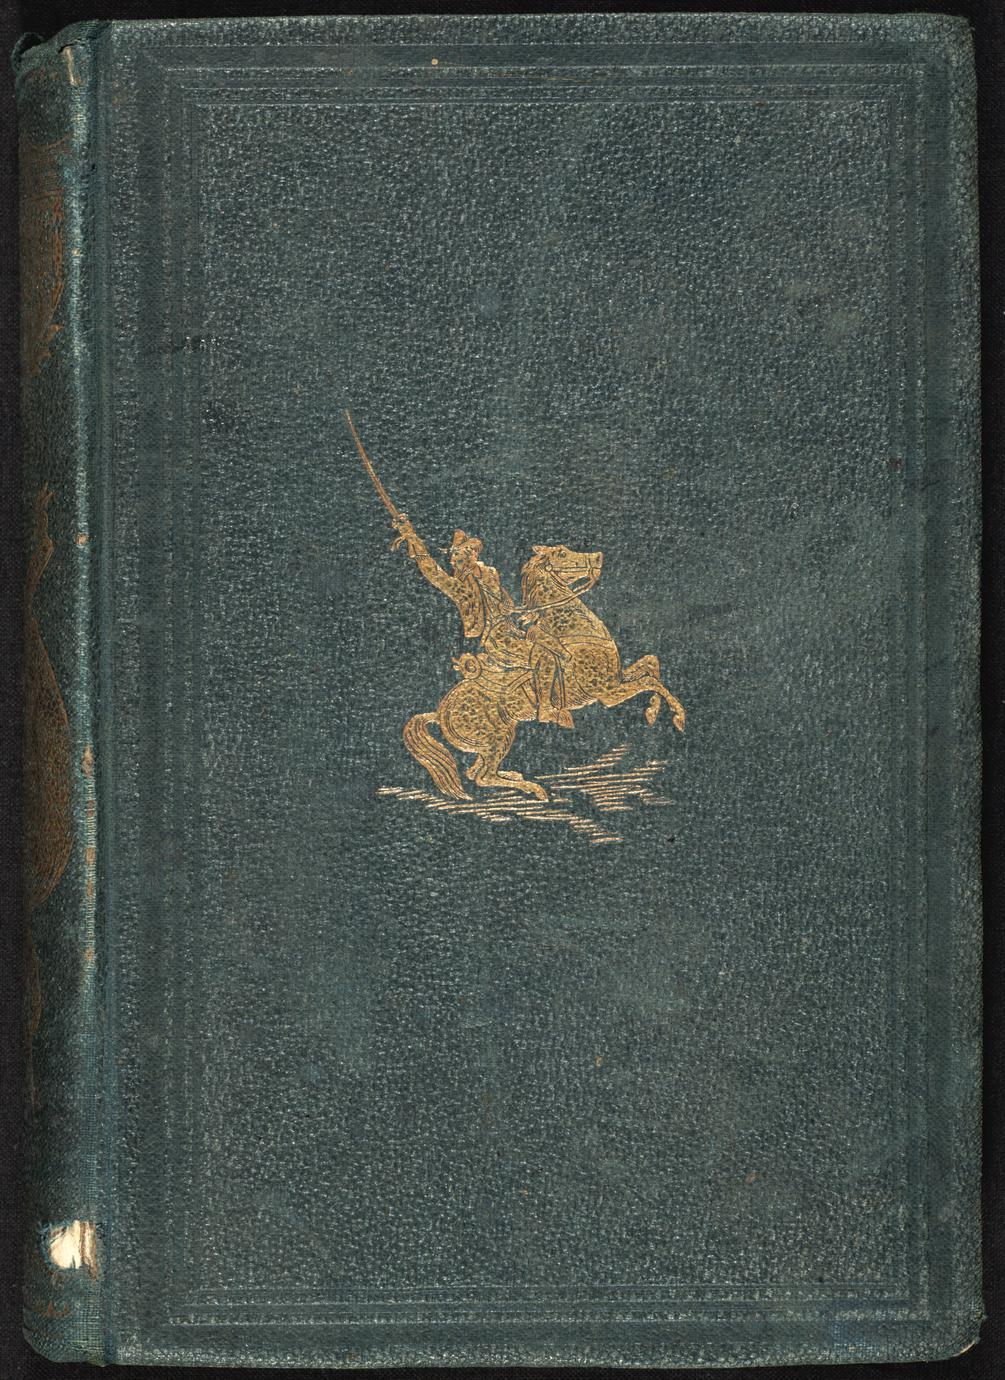 Kilpatrick and our cavalry : comprising a sketch of the life of General Kilpatrick : with an account of the cavalry raids, engagements, and operations under his command : from the beginning of the rebellion to the surrender of Johnston (1 of 2)